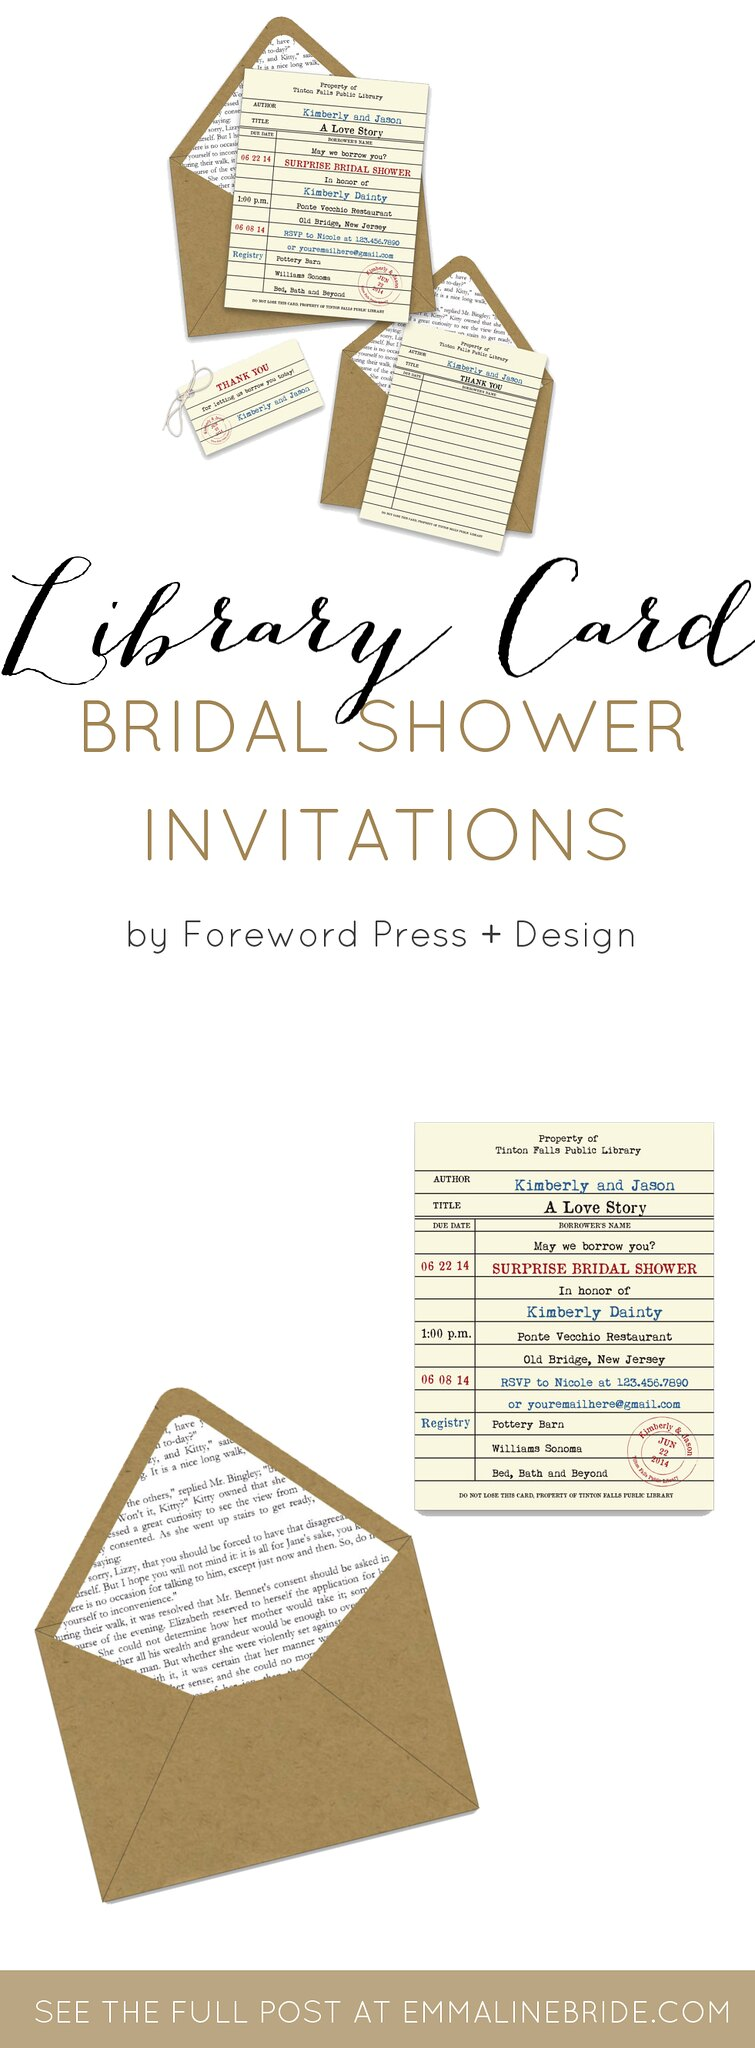 library card bridal shower invitations